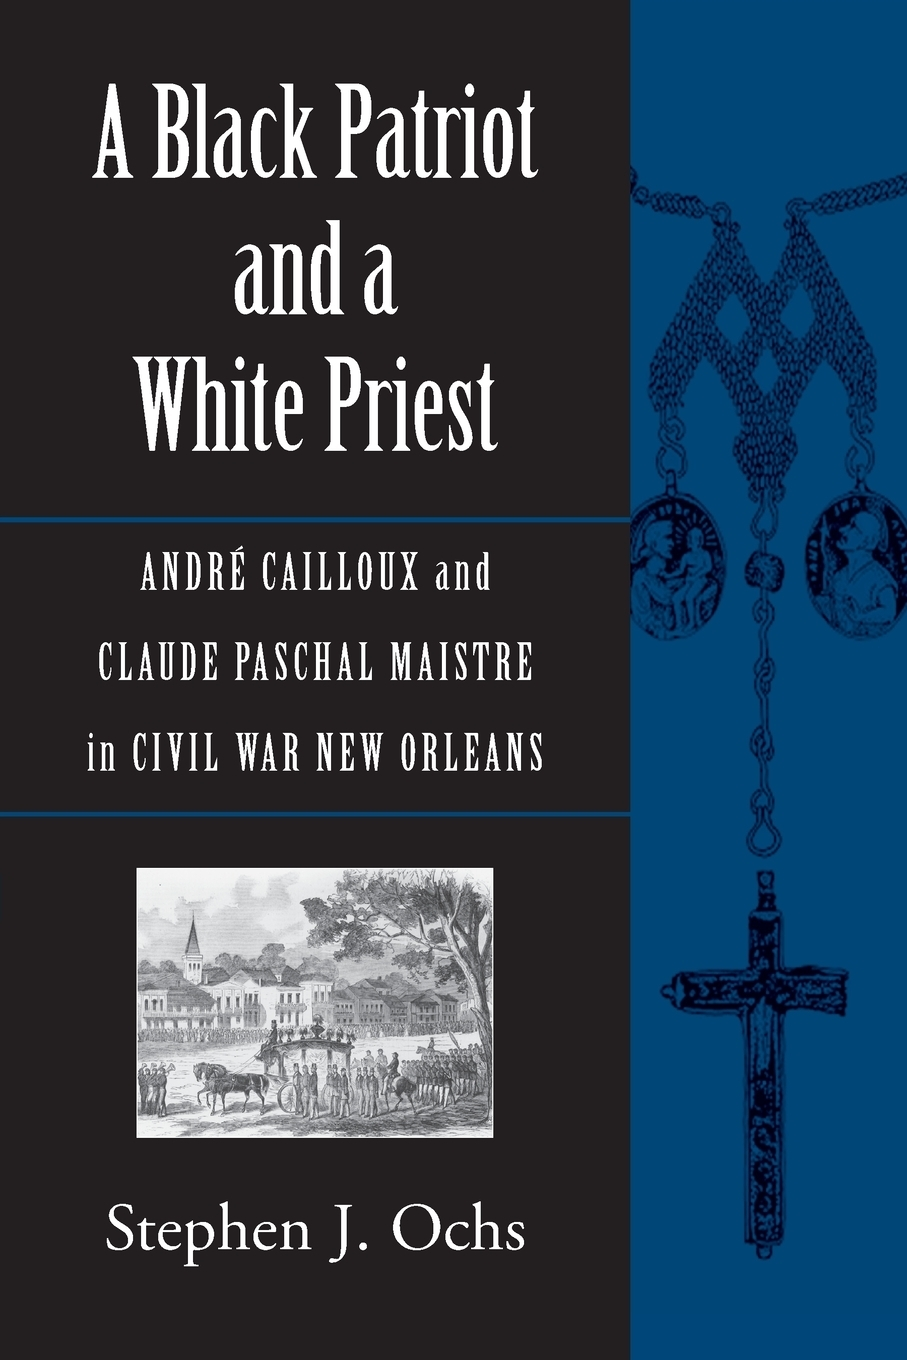 Stephen J. Ochs. A Black Patriot and a White Priest. Andre Cailloux and Claude Paschal Maistre in Civil War New Orleans